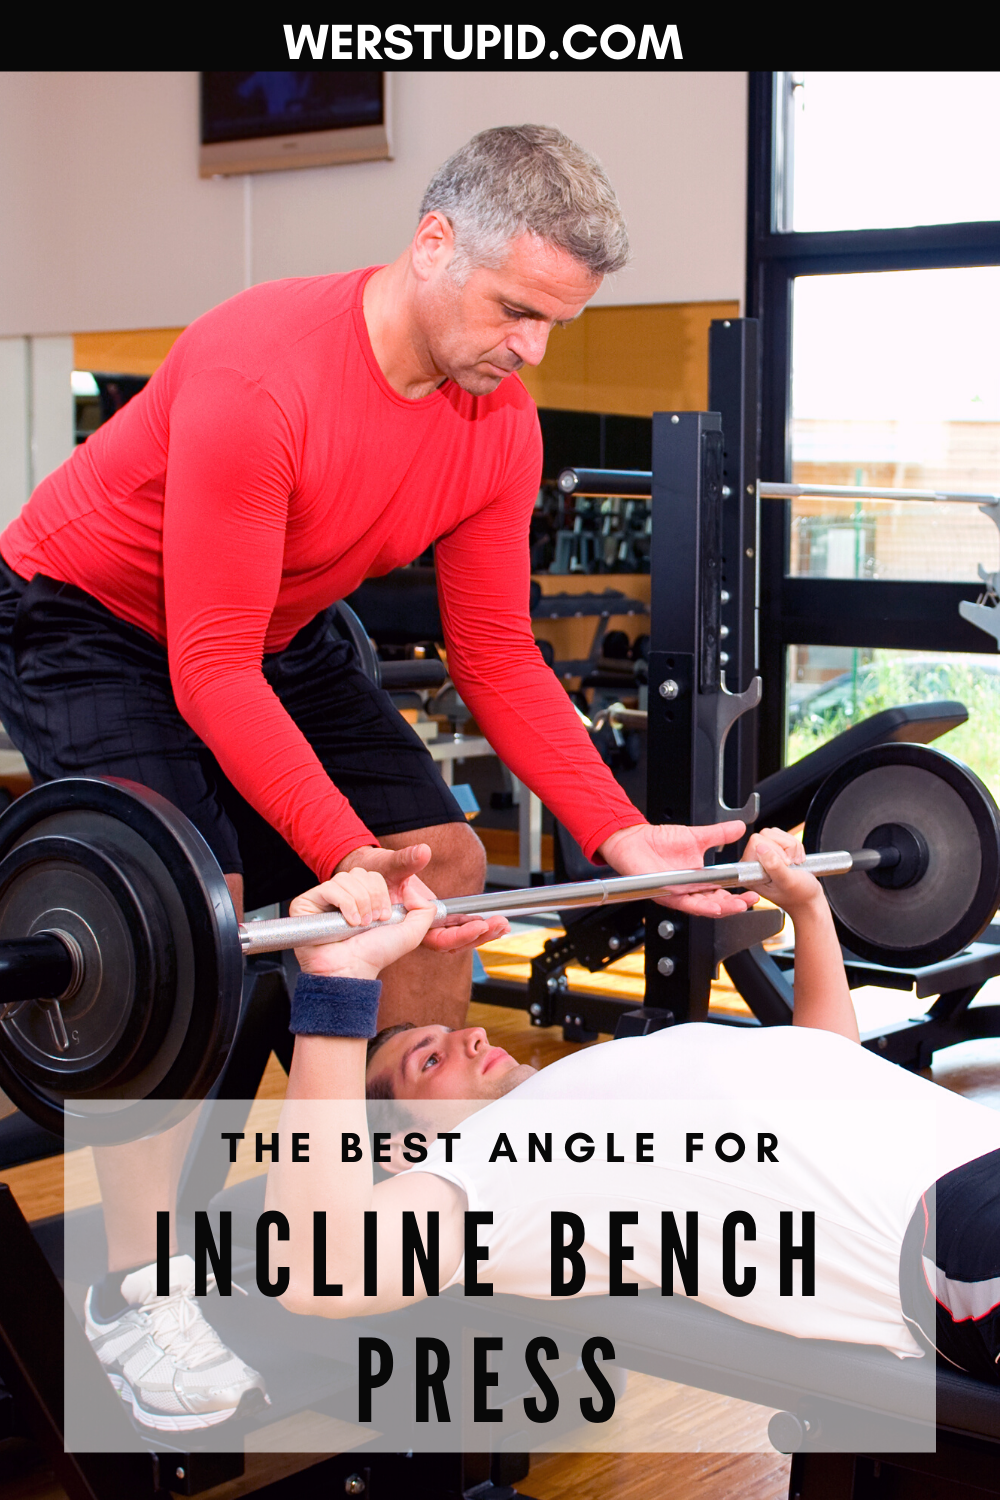 Incline Bench Press Angle Exercise Guide Angle Bench Exercise Guide Incline Press In 2020 Bench Press Incline Bench Bench Press Workout